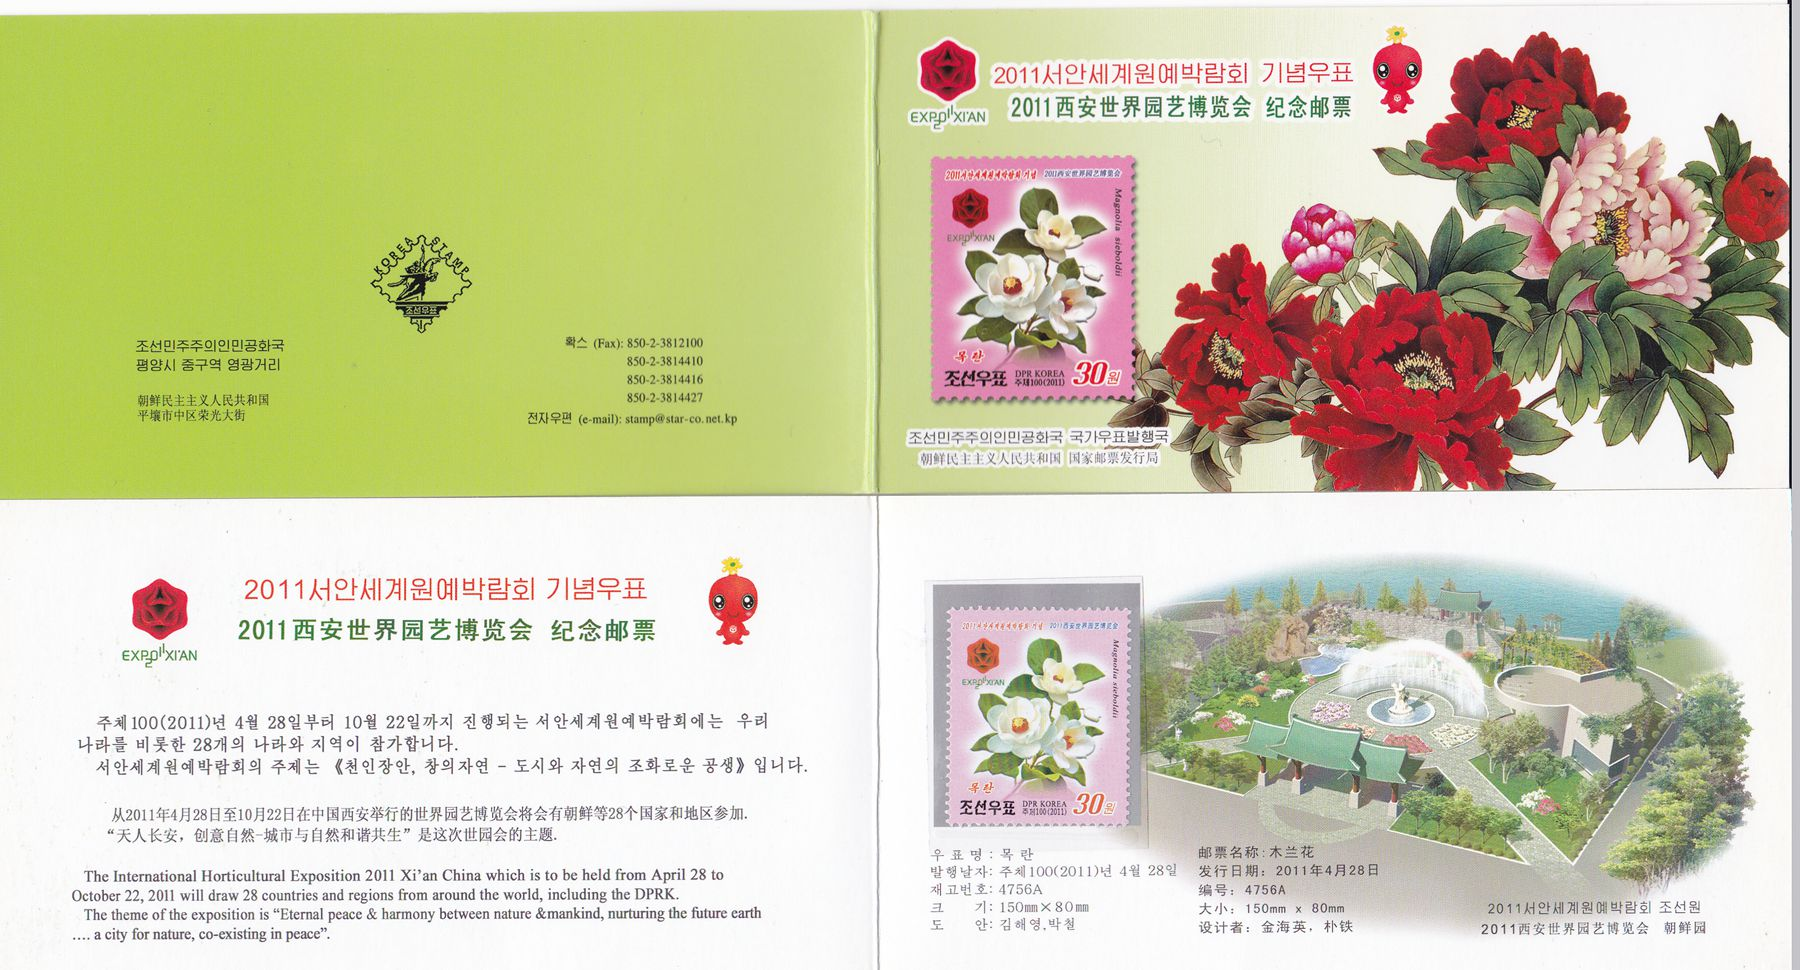 L4430, Korean Special Stamp Booklet, China Xi'an Horticultural Expo, 2011